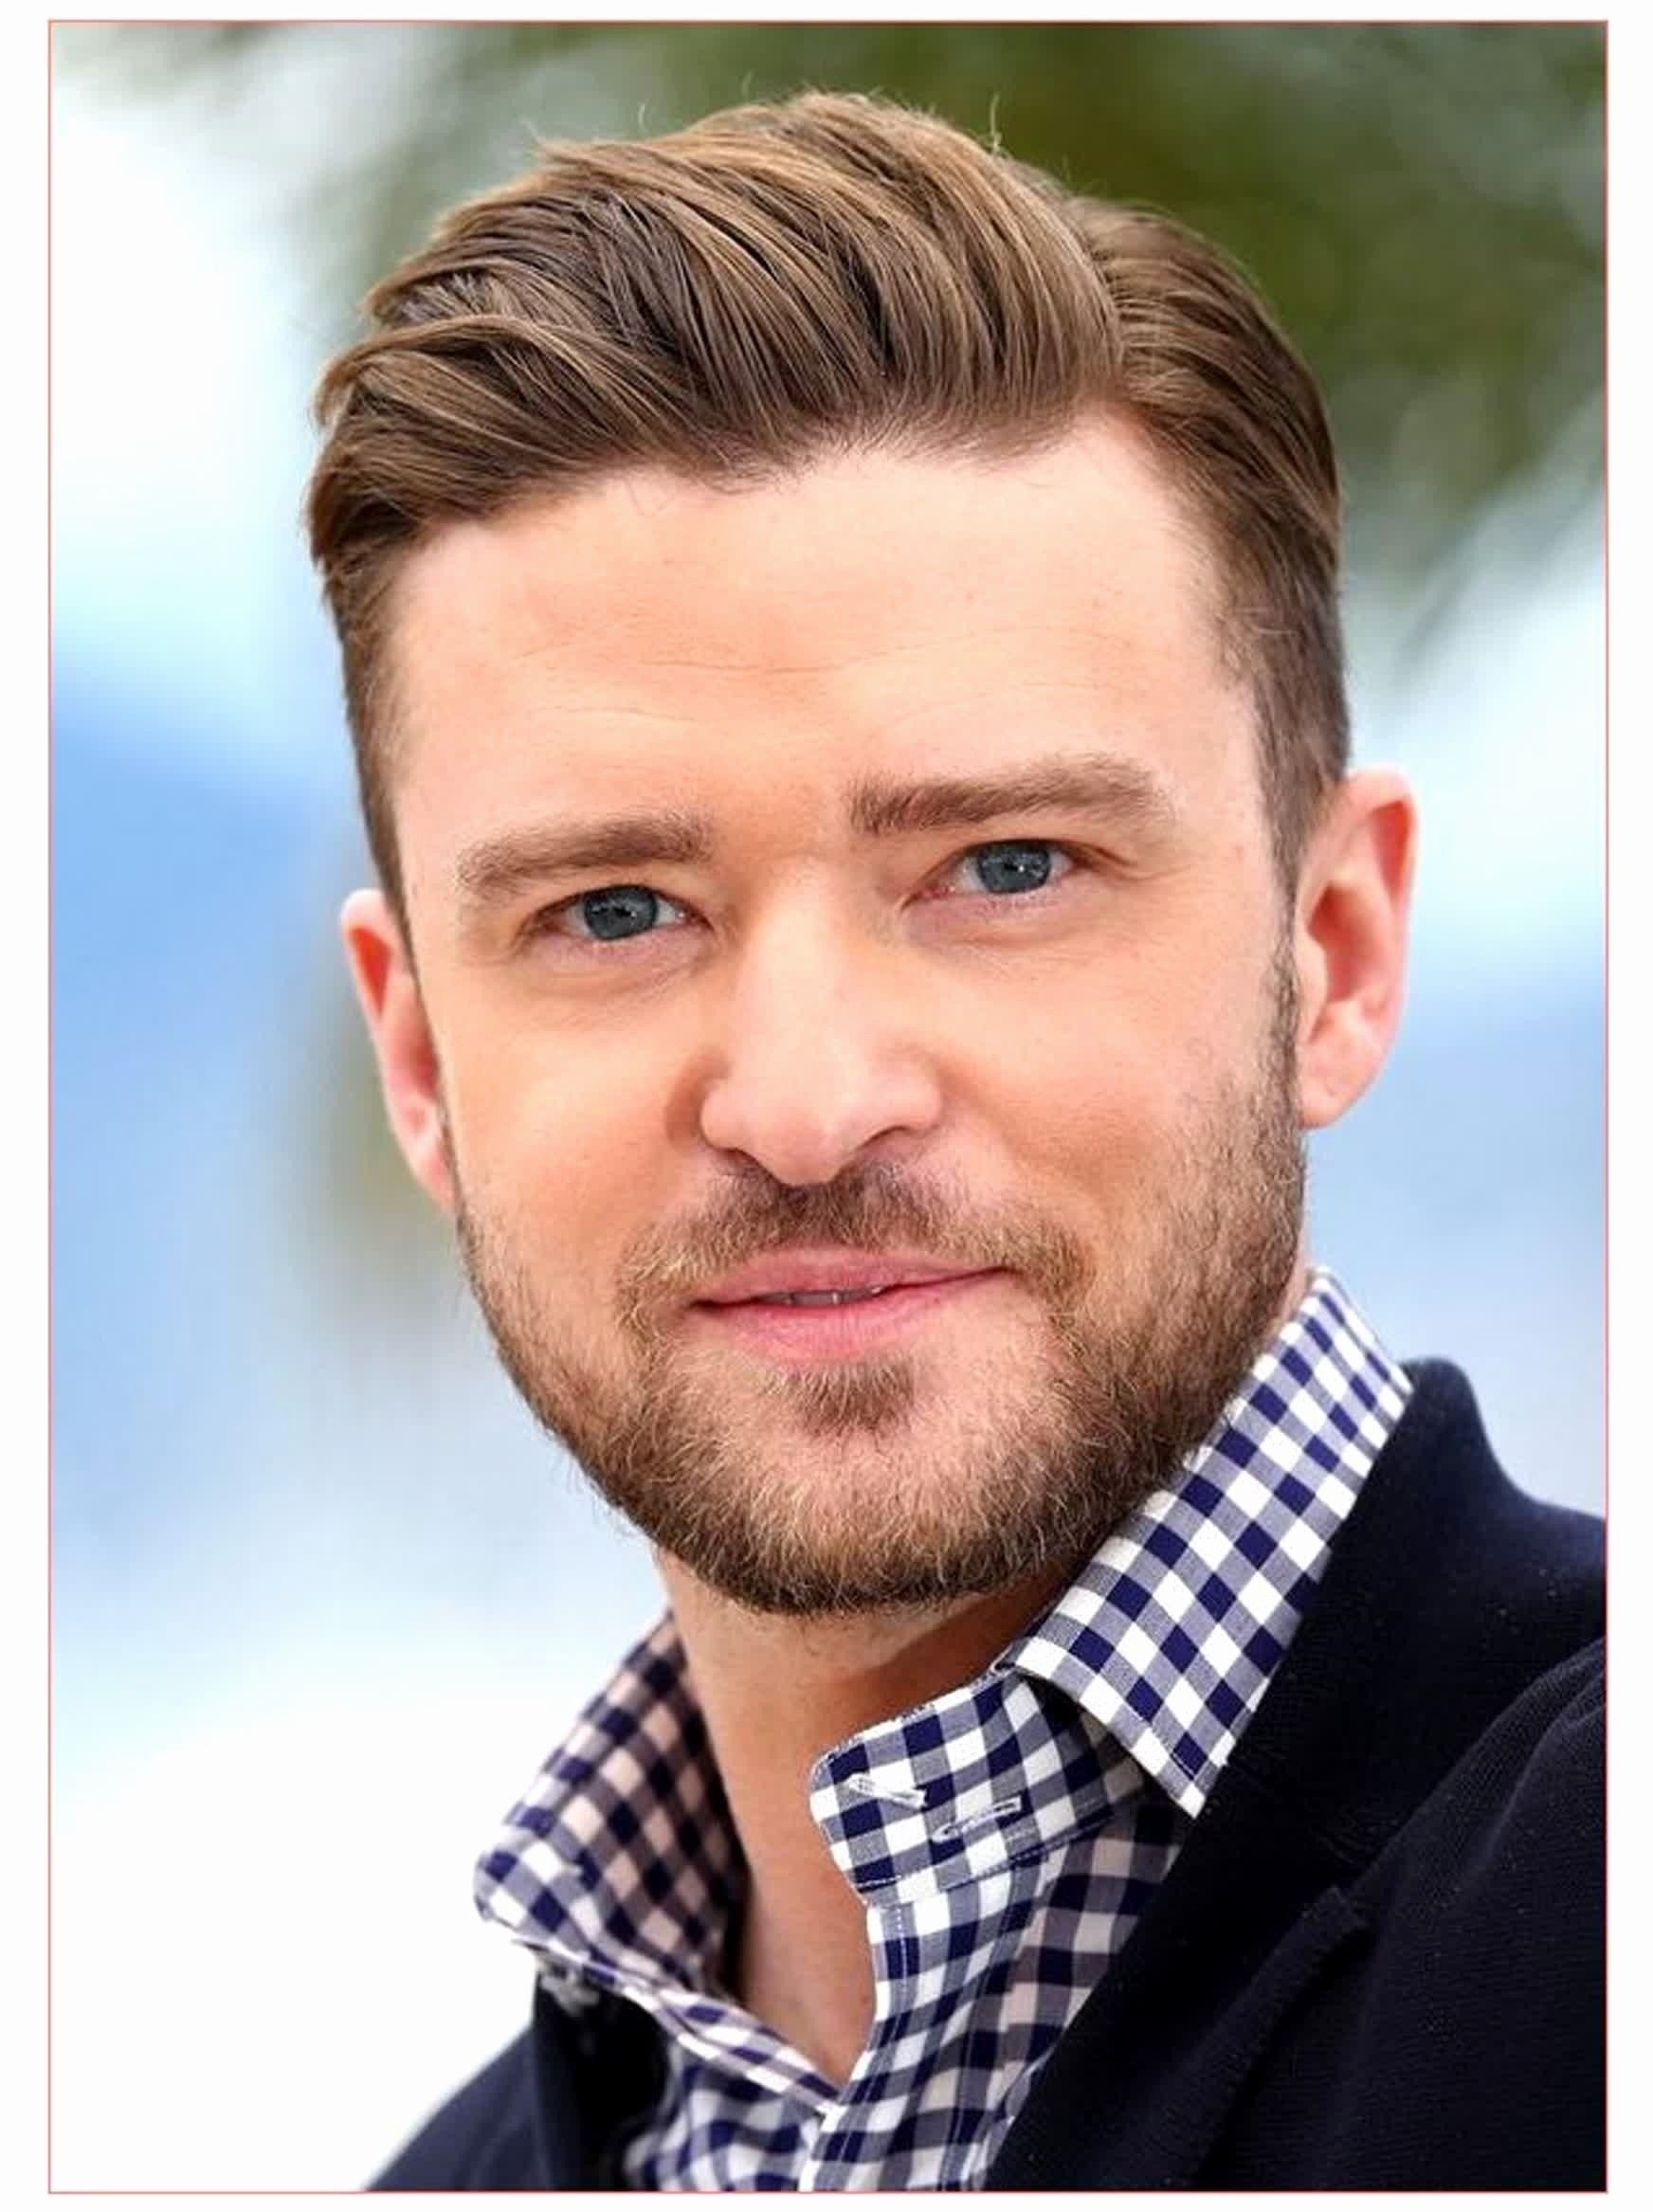 Hairstyle For 40 Year Old Man Best Hair Style Men Hipster Haircut Older Mens Hairstyles Hipster Haircuts For Men